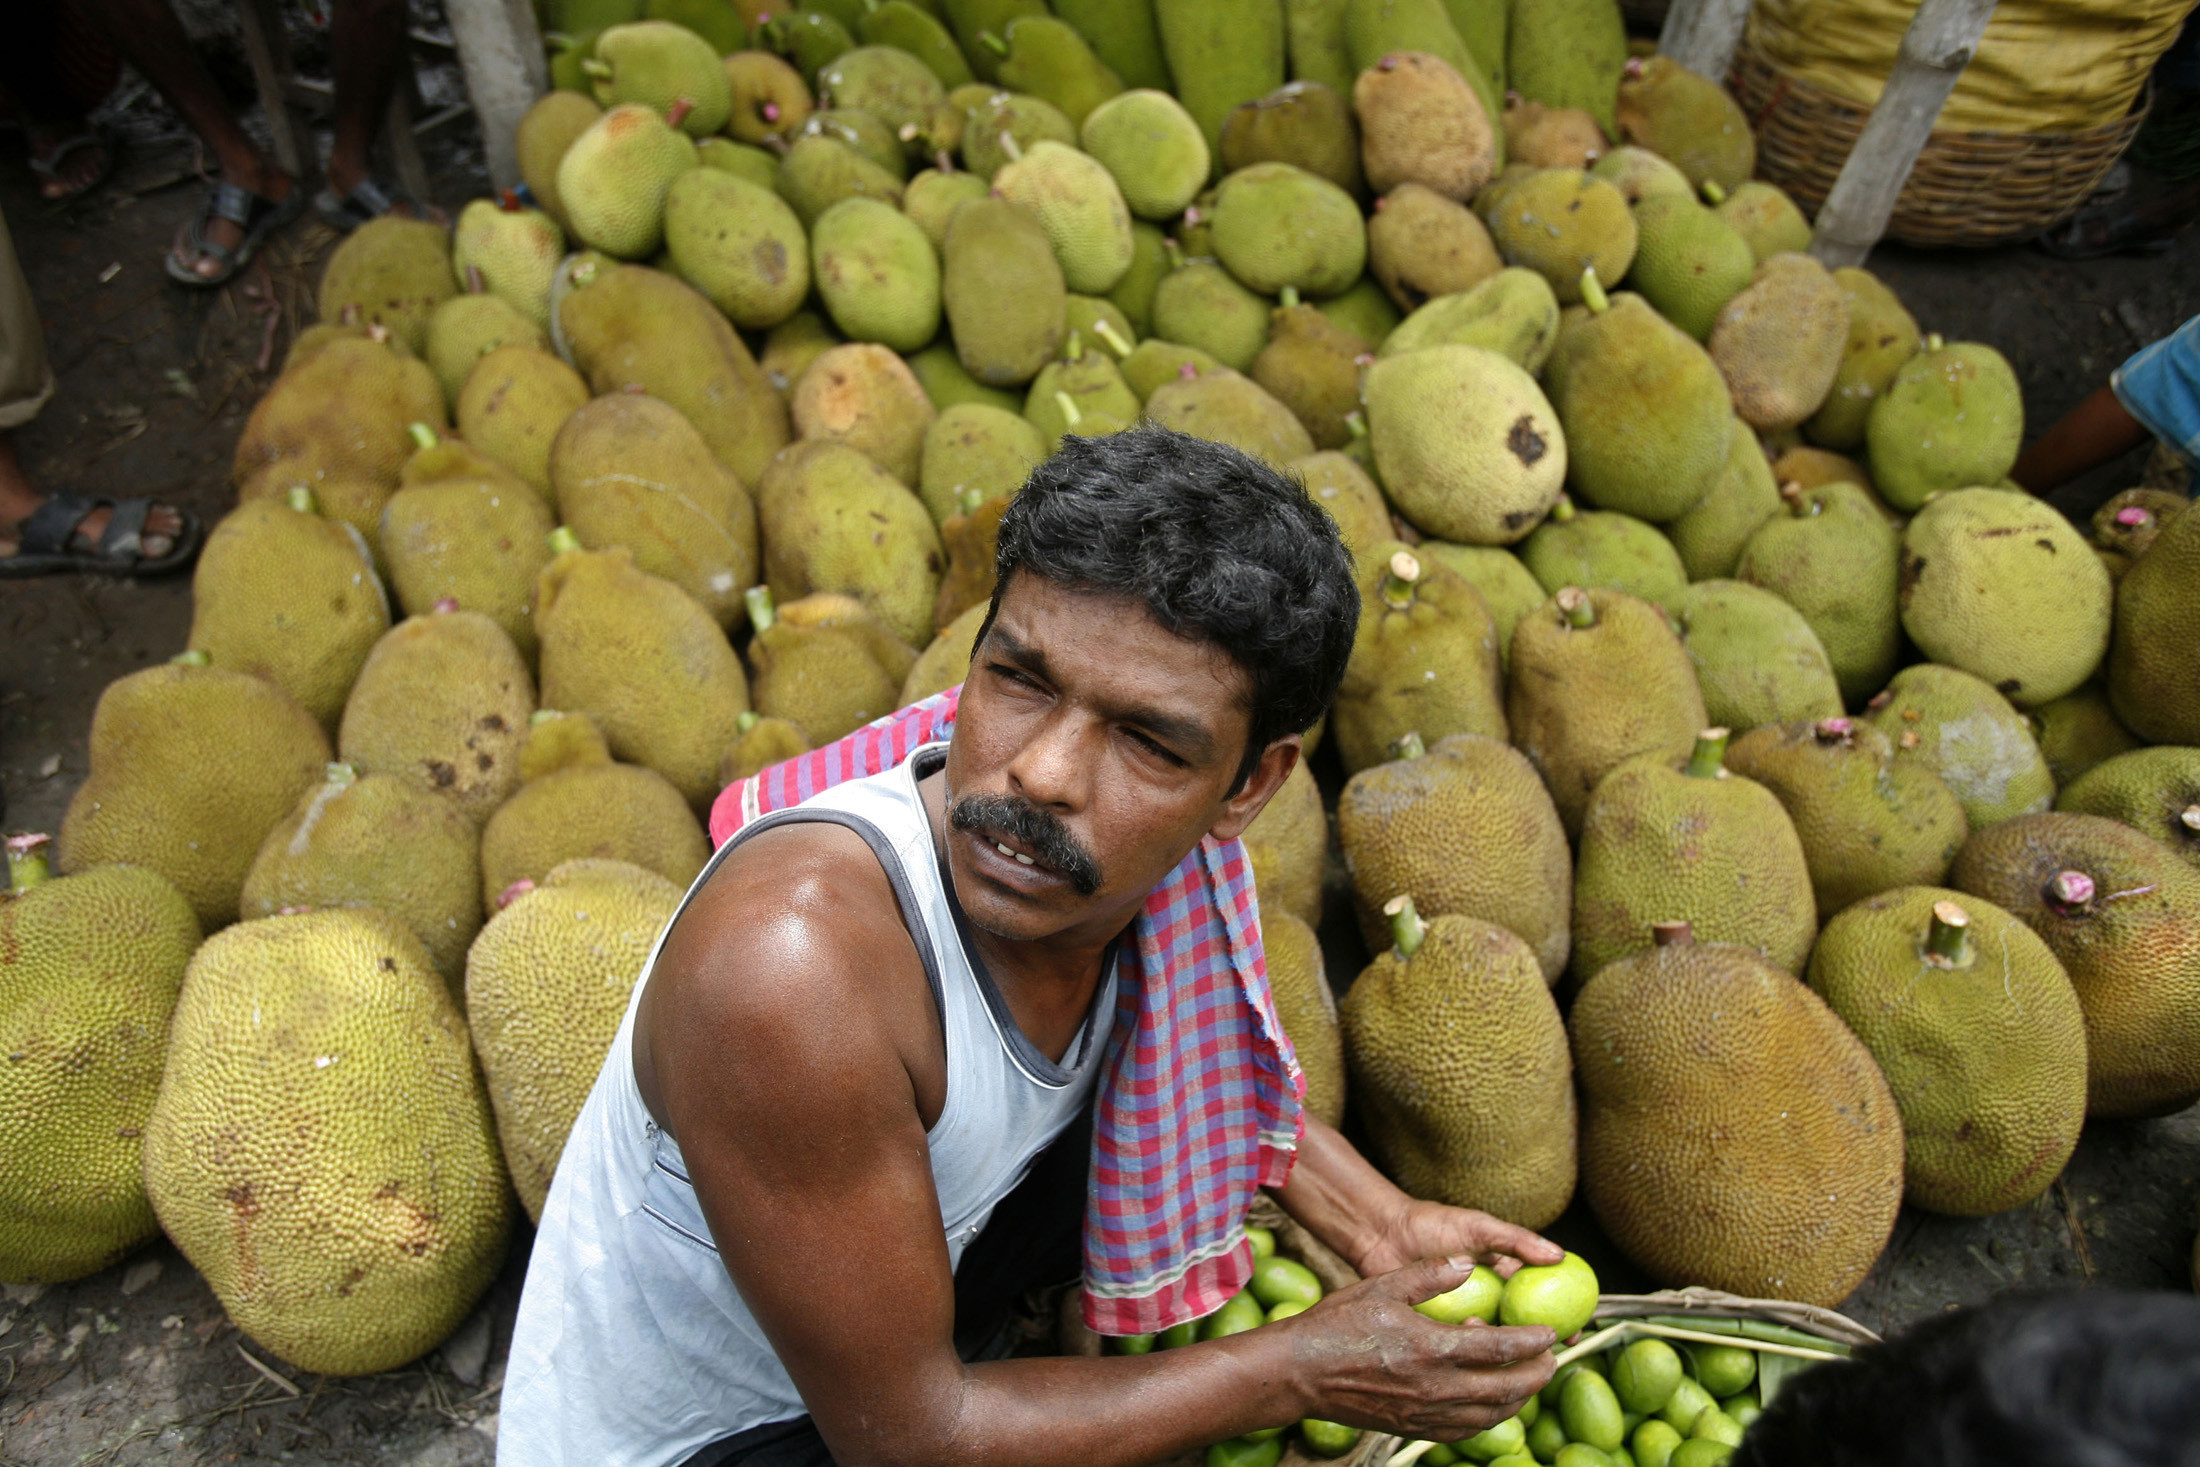 A farmer holding lemons sits in front of a stall selling jackfruits at a wholesale vegetable market on the outskirts of the eastern Indian city of Kolkata June 21, 2008.The rising prices of food and imported fuel are pushing inflation in many parts of Asia to their highest in a decade, weakening trade and budget balances and complicating monetary policy. REUTERS/Parth Sanyal  (INDIA) - GM1E46L1MBC01